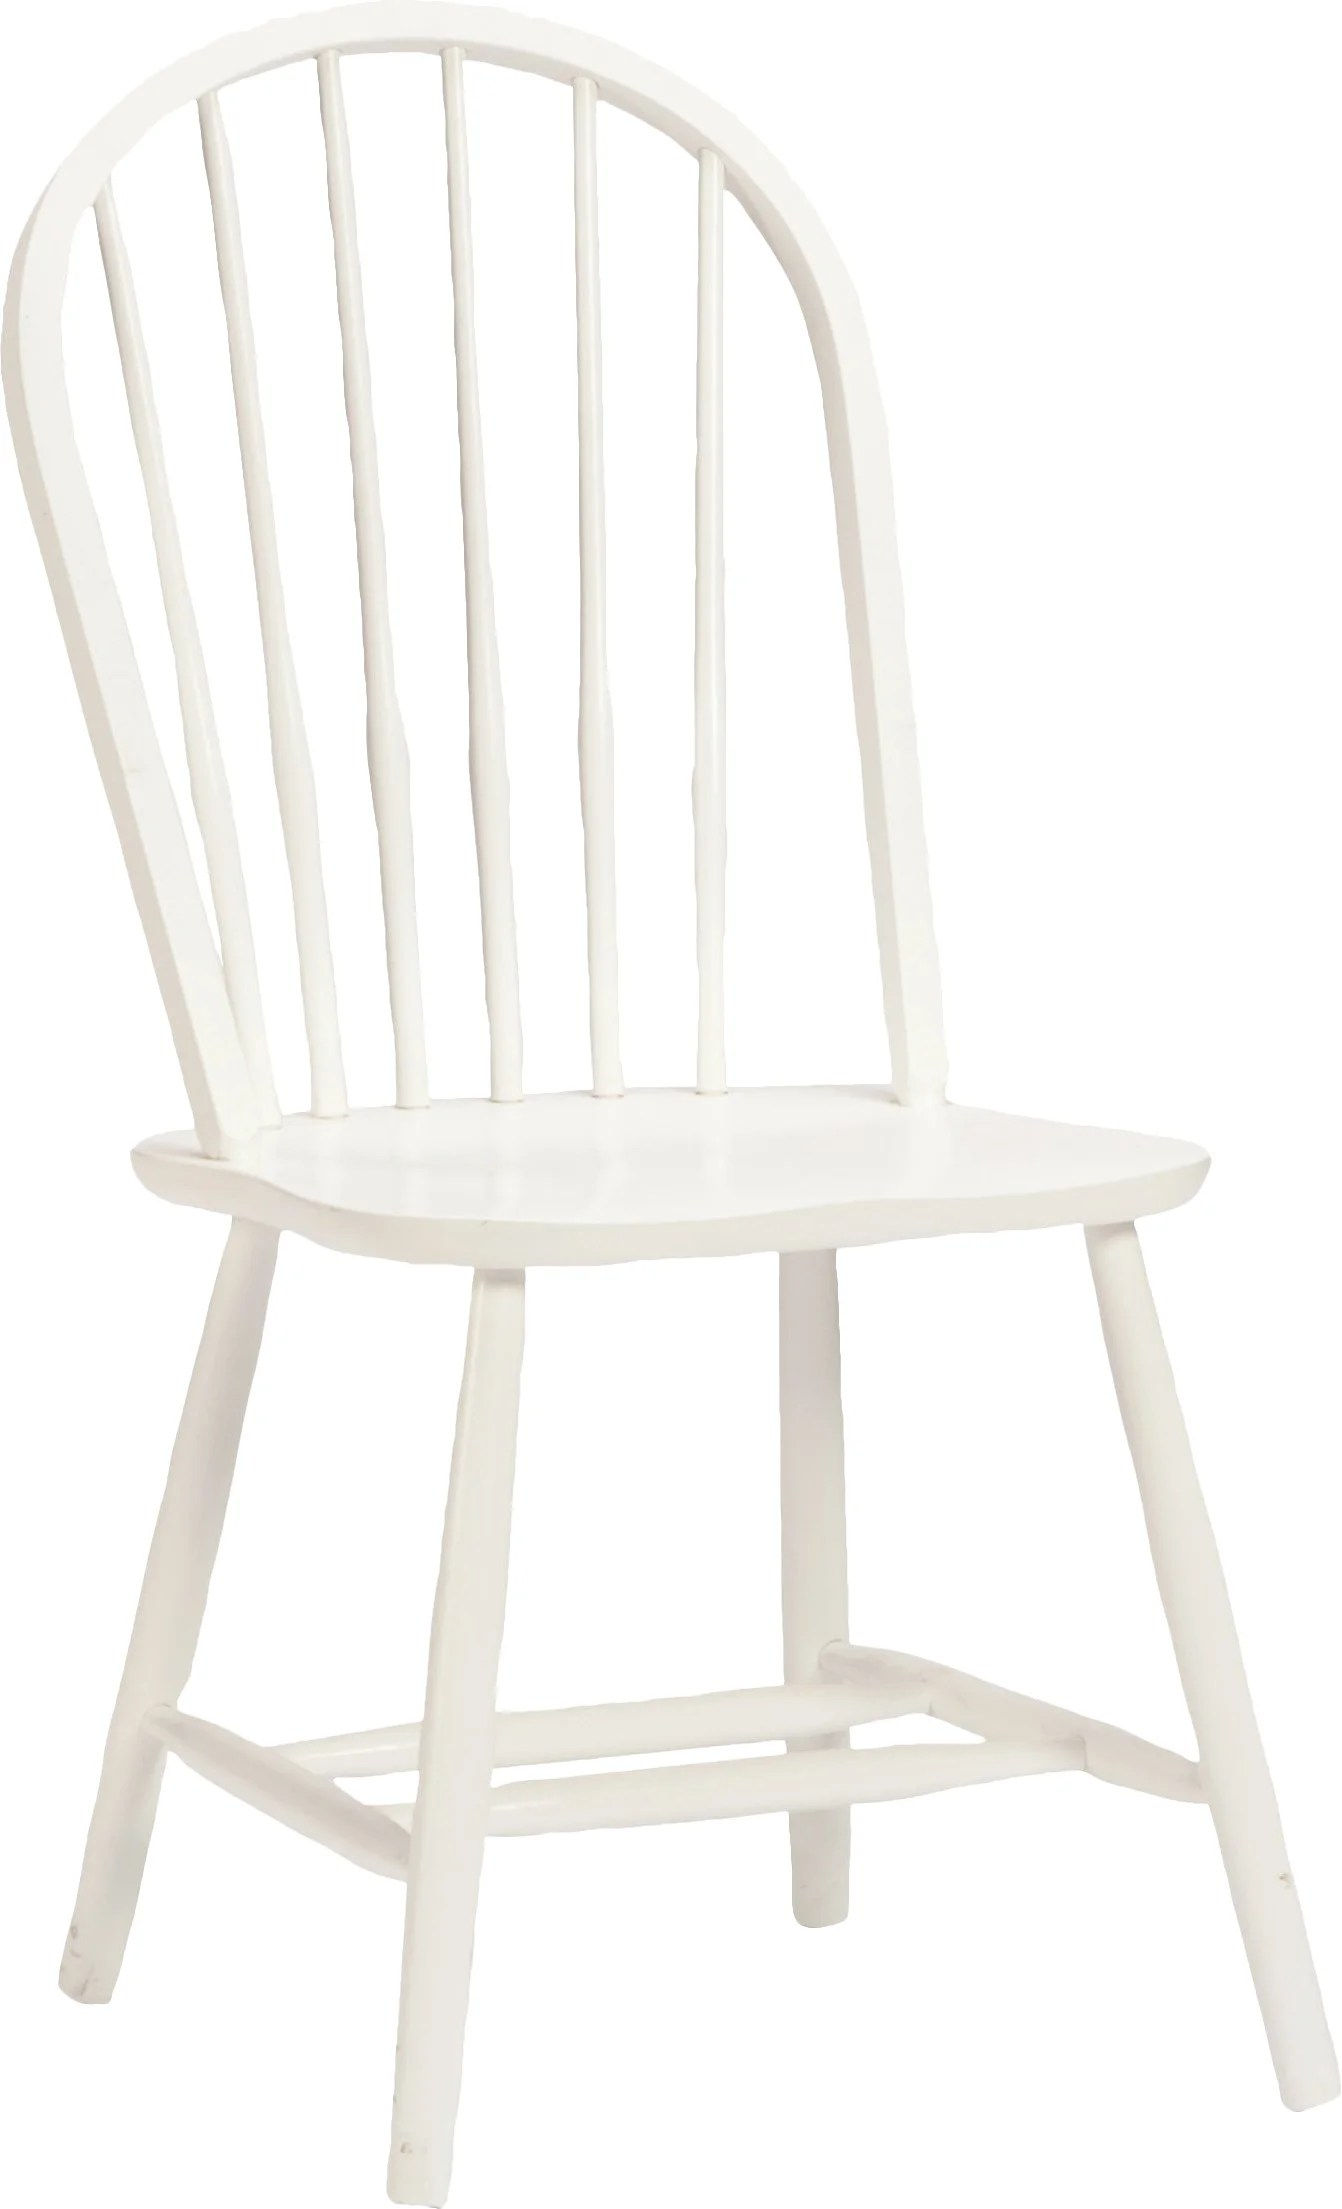 Harriet Bee Bonneau Solid Wood Dining Chair